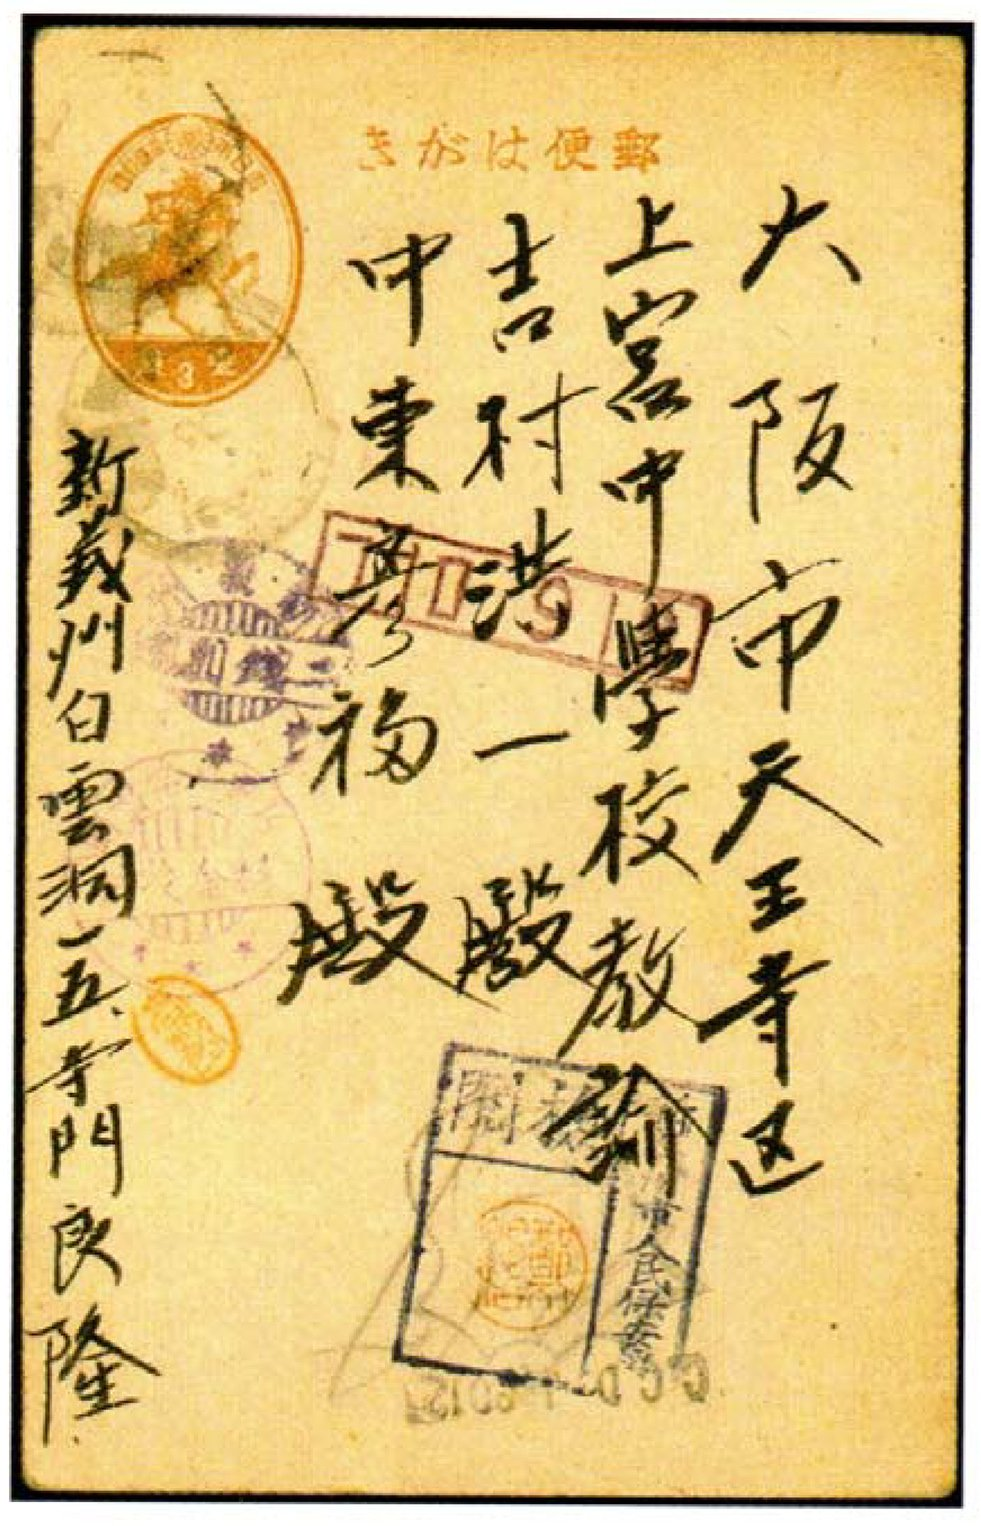 Figure 3, Japanese 3 sen postcard sent from Shineuiju, North Korea, to Osaka, Japan. Cancellation of 'Shineuiju, 2. 8. 2' (2nd August 1946) then hand-stamp 'Shineuiju, 2 sen Fee Collected', incorrectly rating the postcard at 5 sen, then to Shineuiju, Tokiwa-cho post office were further 'Fee Collected' hand-stamp applied making the correct rate to Japan (rate unknown). Then Russian censorship 'GOM 918' at Shineuiju Peoples Security Station, Japanese Censorship and U.S.A. Censorship in Japan.